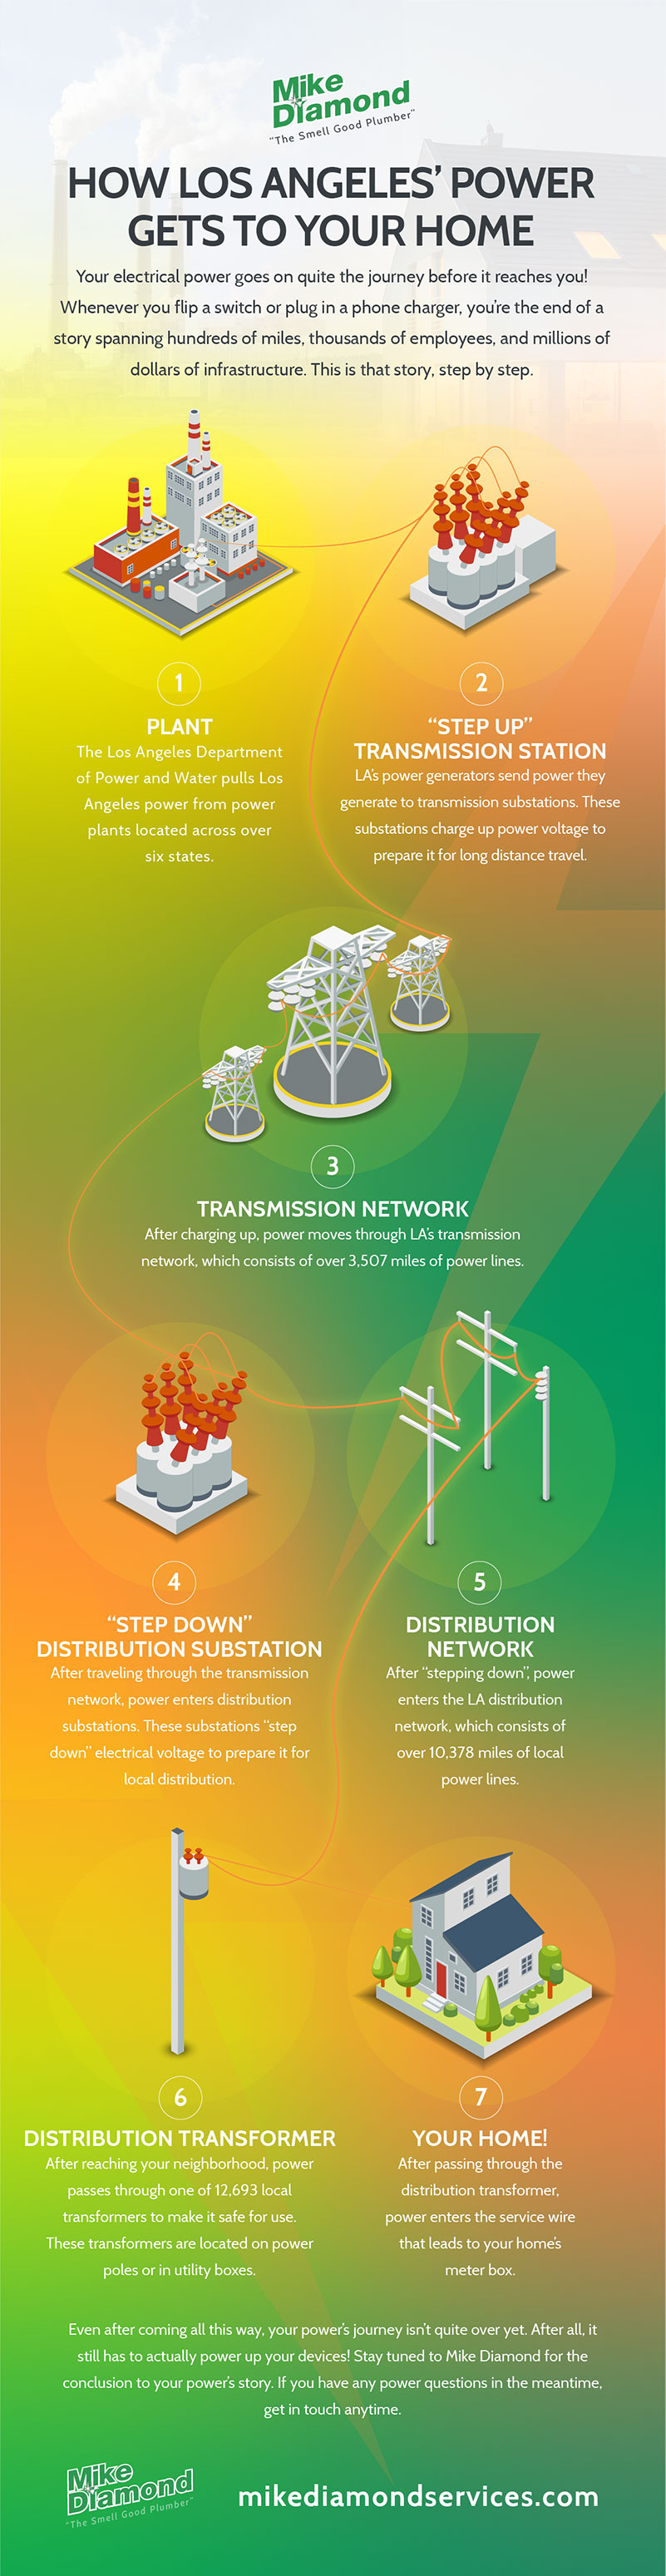 How Does LA's Electrical Power Get to You?